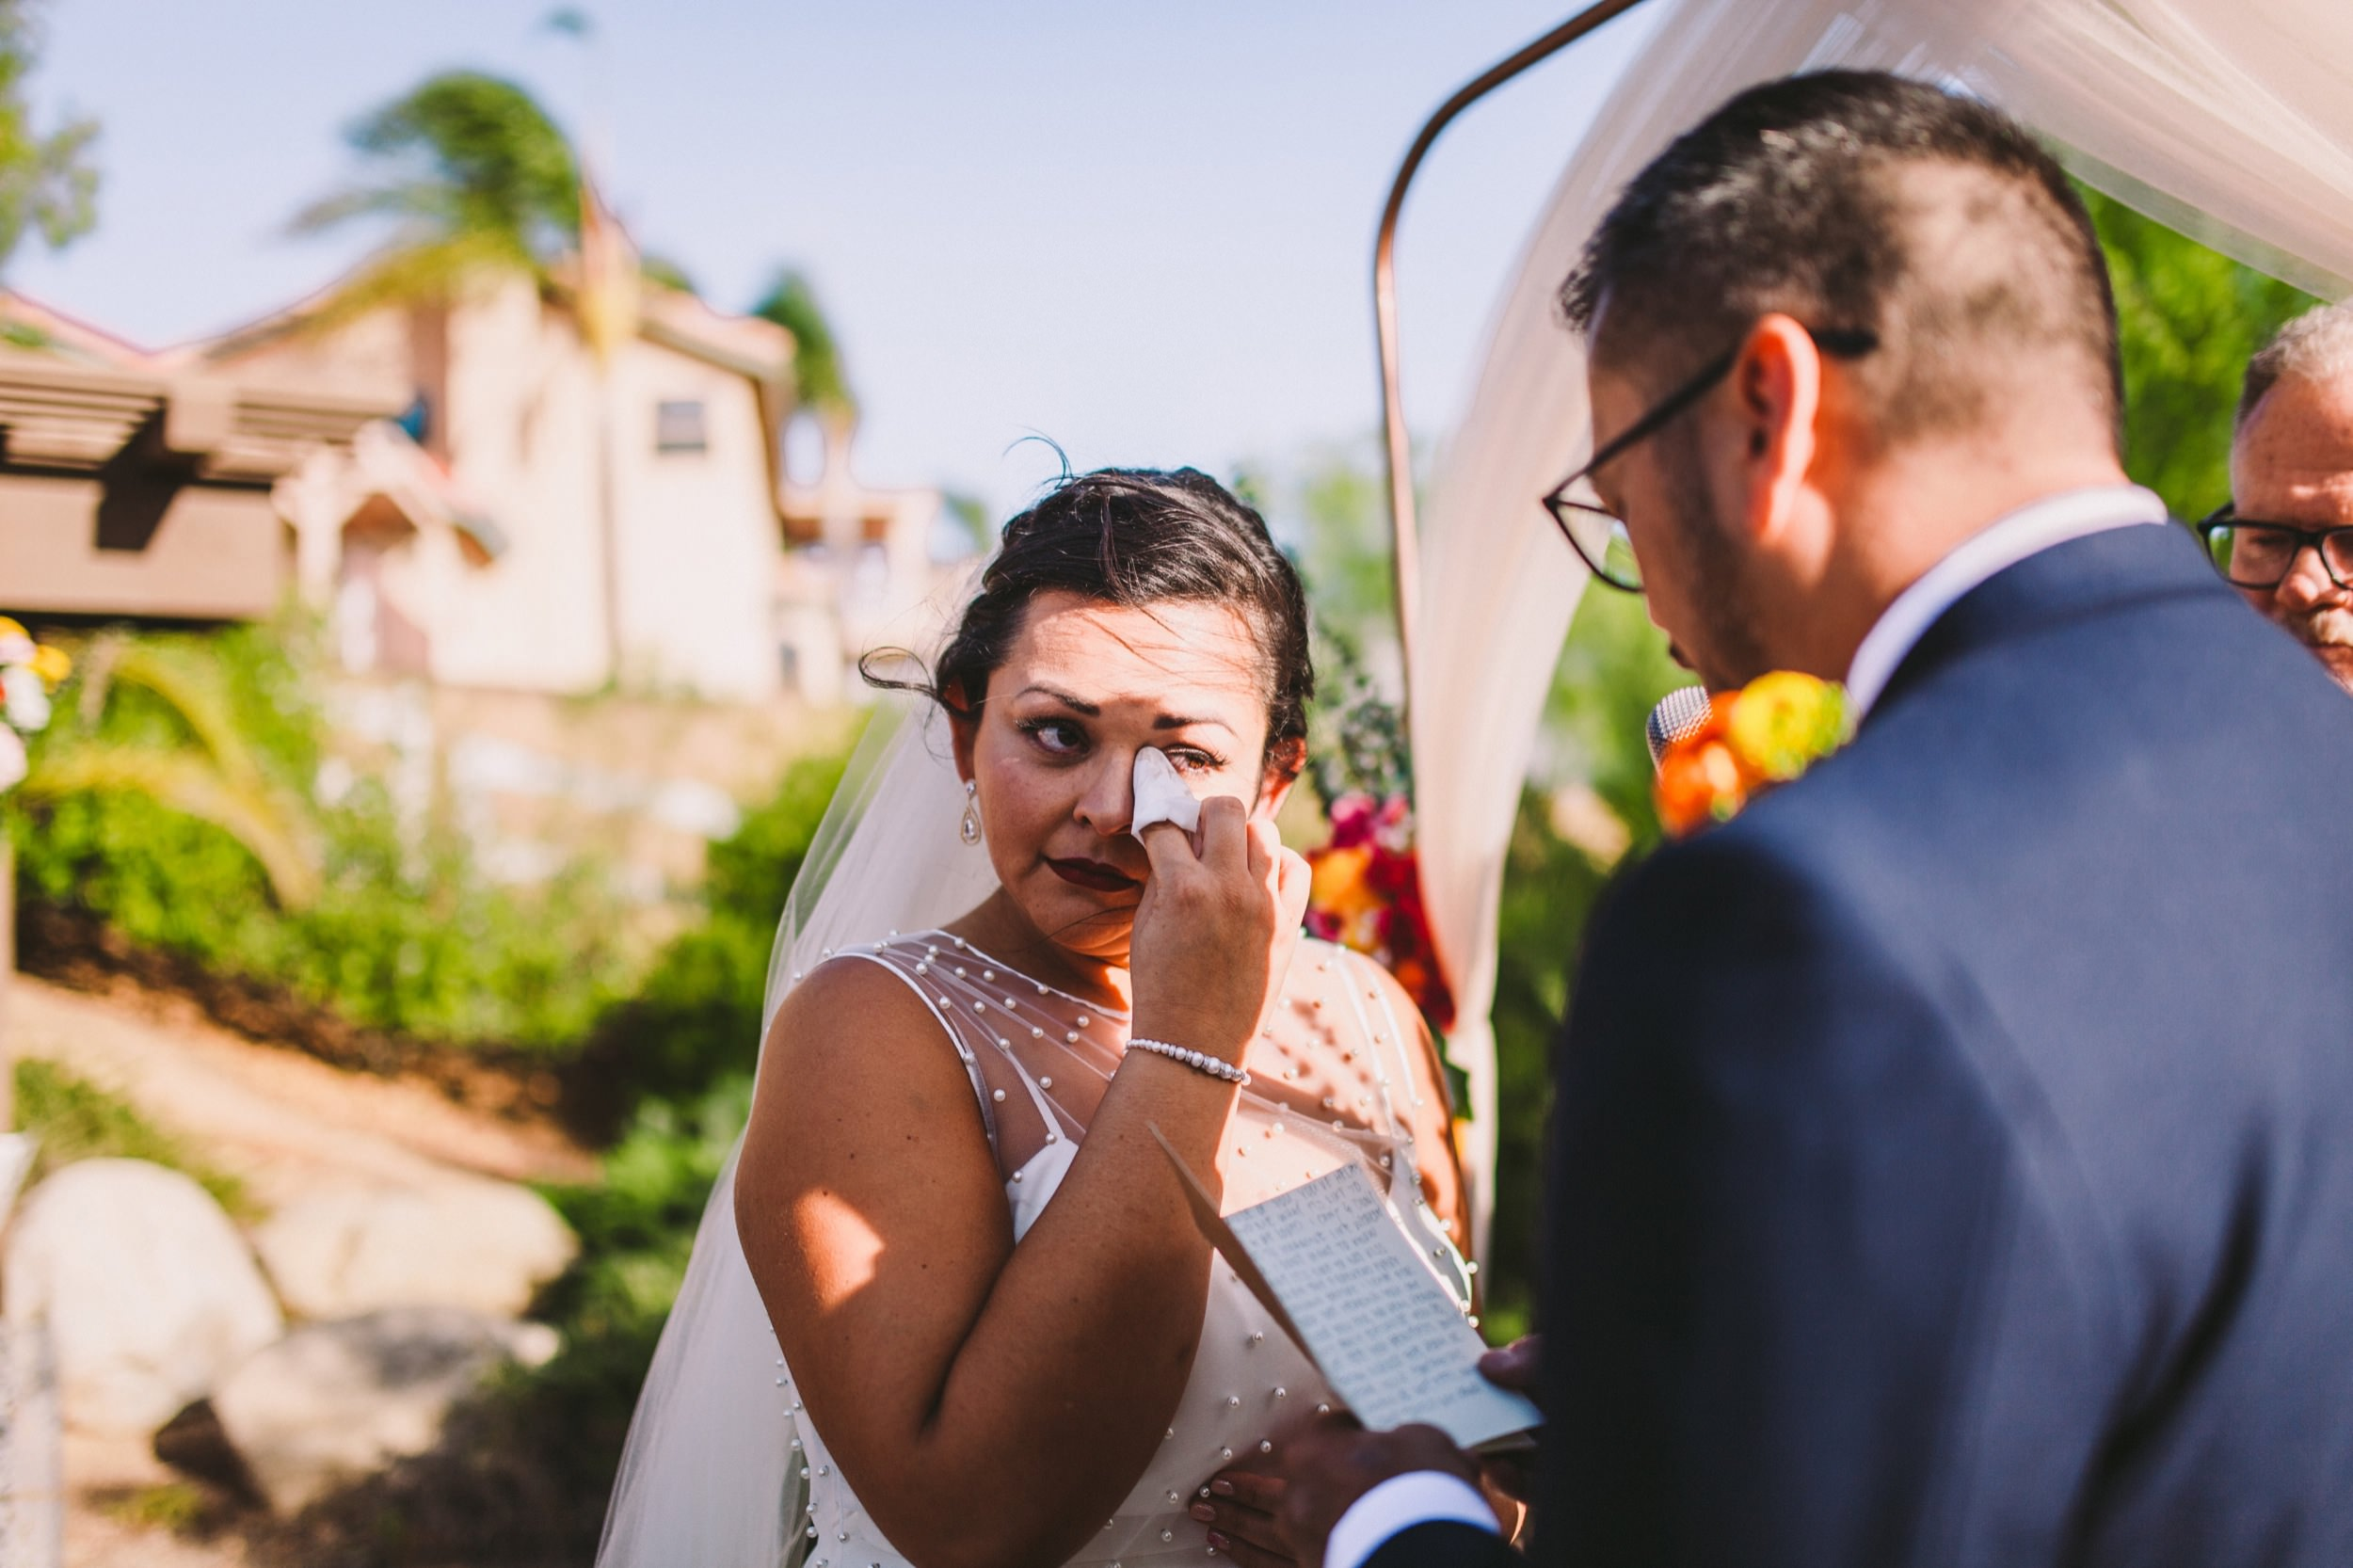 Intimate, Relaxed & Colorful Wedding Photography in Temecula-164.jpg